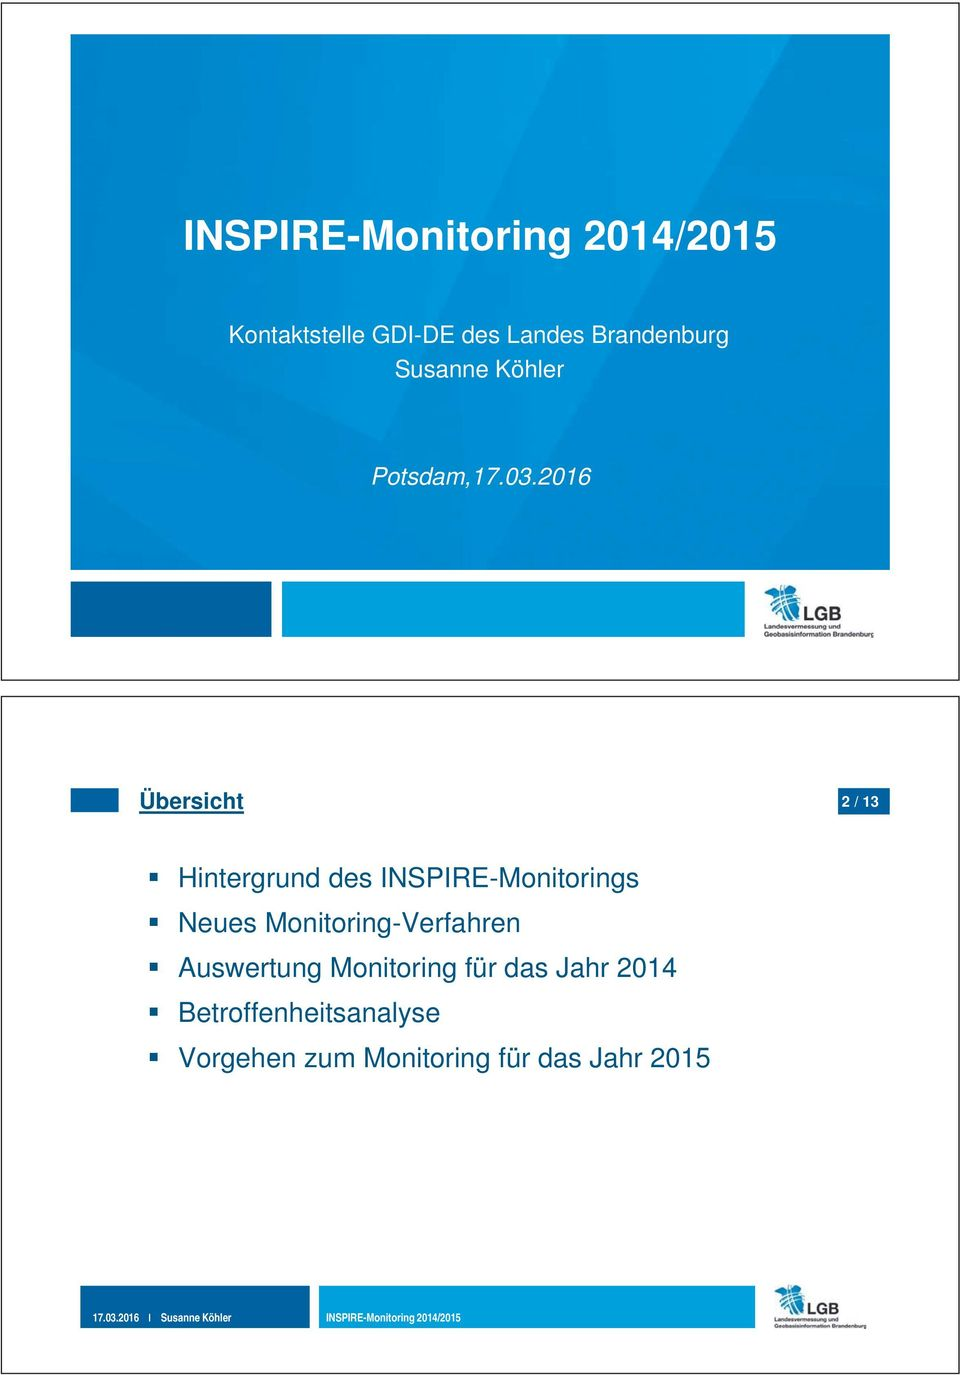 INSPIRE-Monitorings Neues Monitoring-Verfahren Auswertung Monitoring